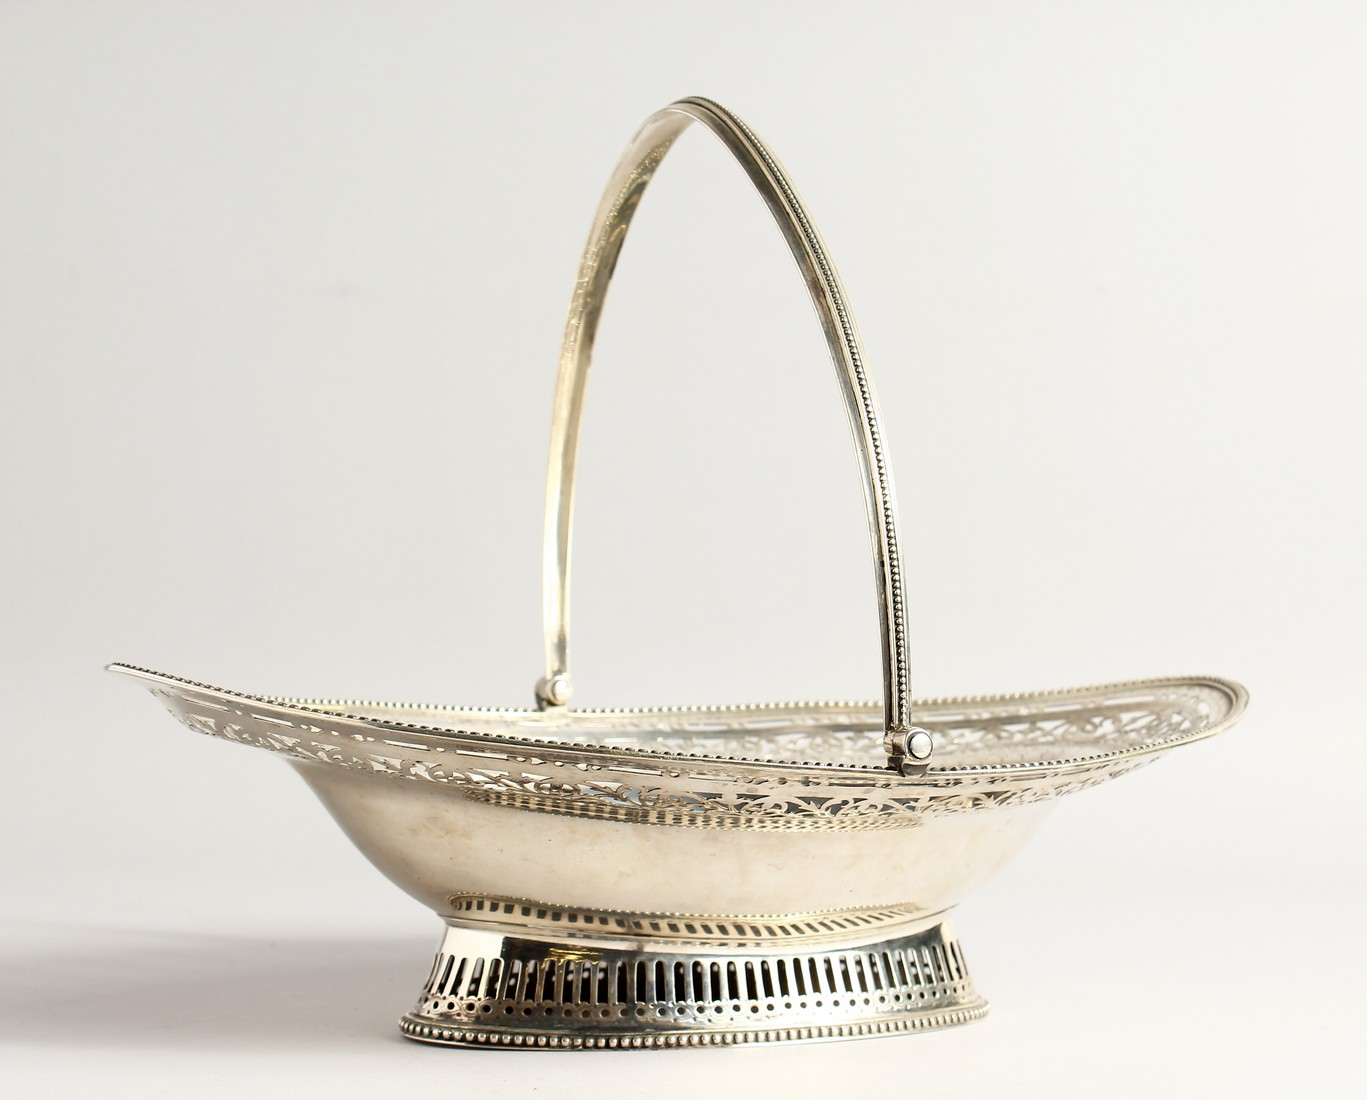 A FINE GEORGE III SILVER CAKE BASKET by HESTER BATEMAN with bead edges and swing handles. London